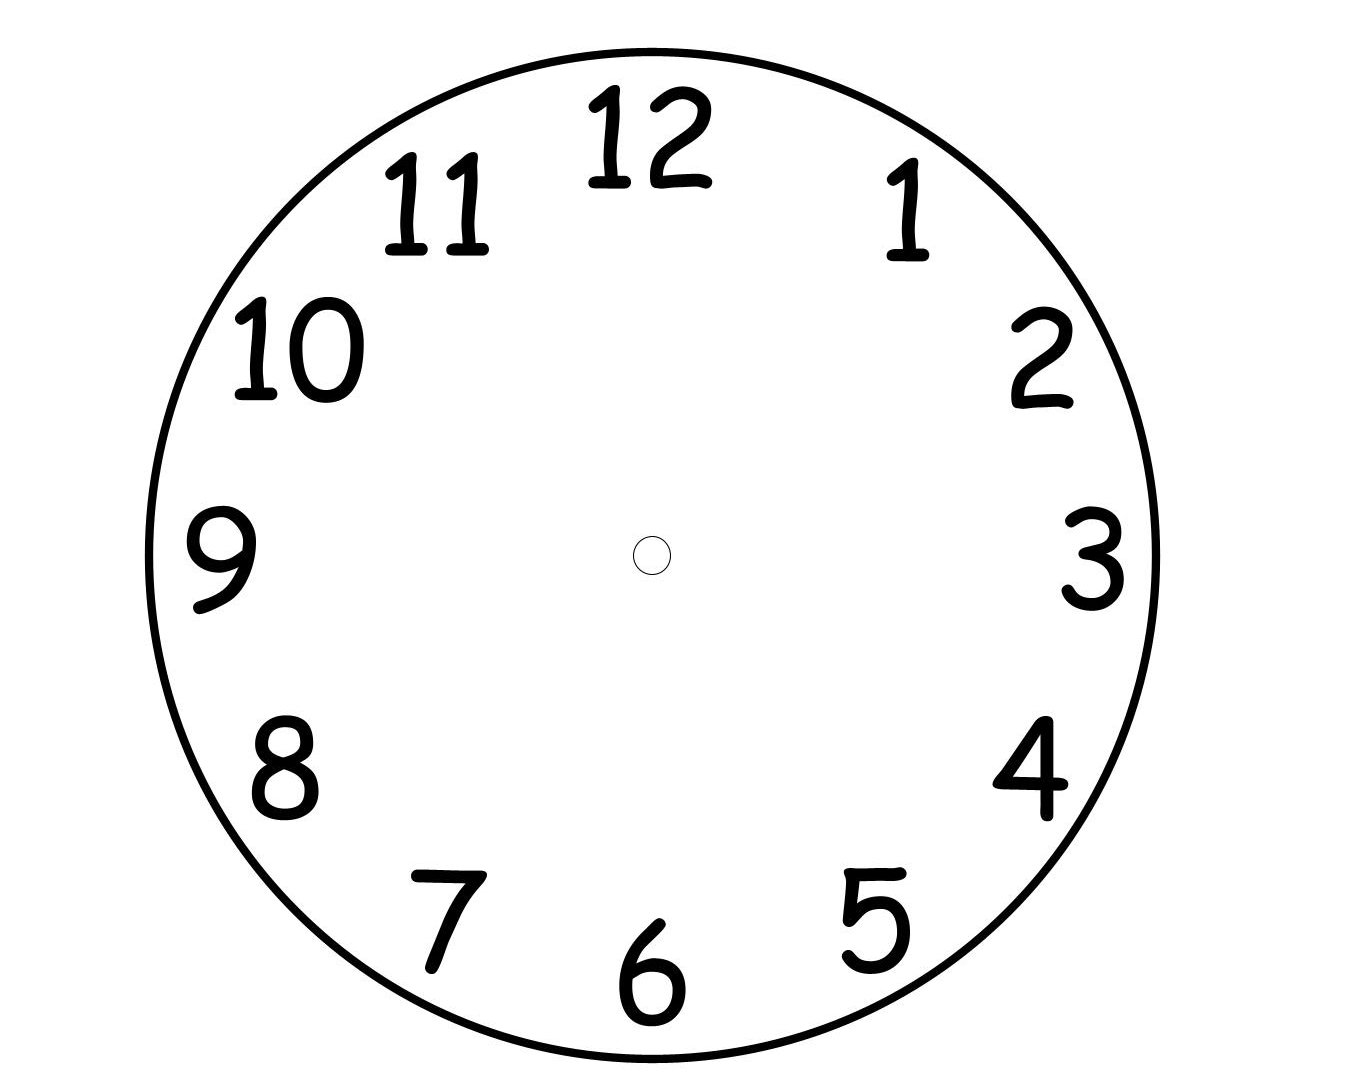 Worksheet Blank Clock Template Grass Fedjp Worksheet